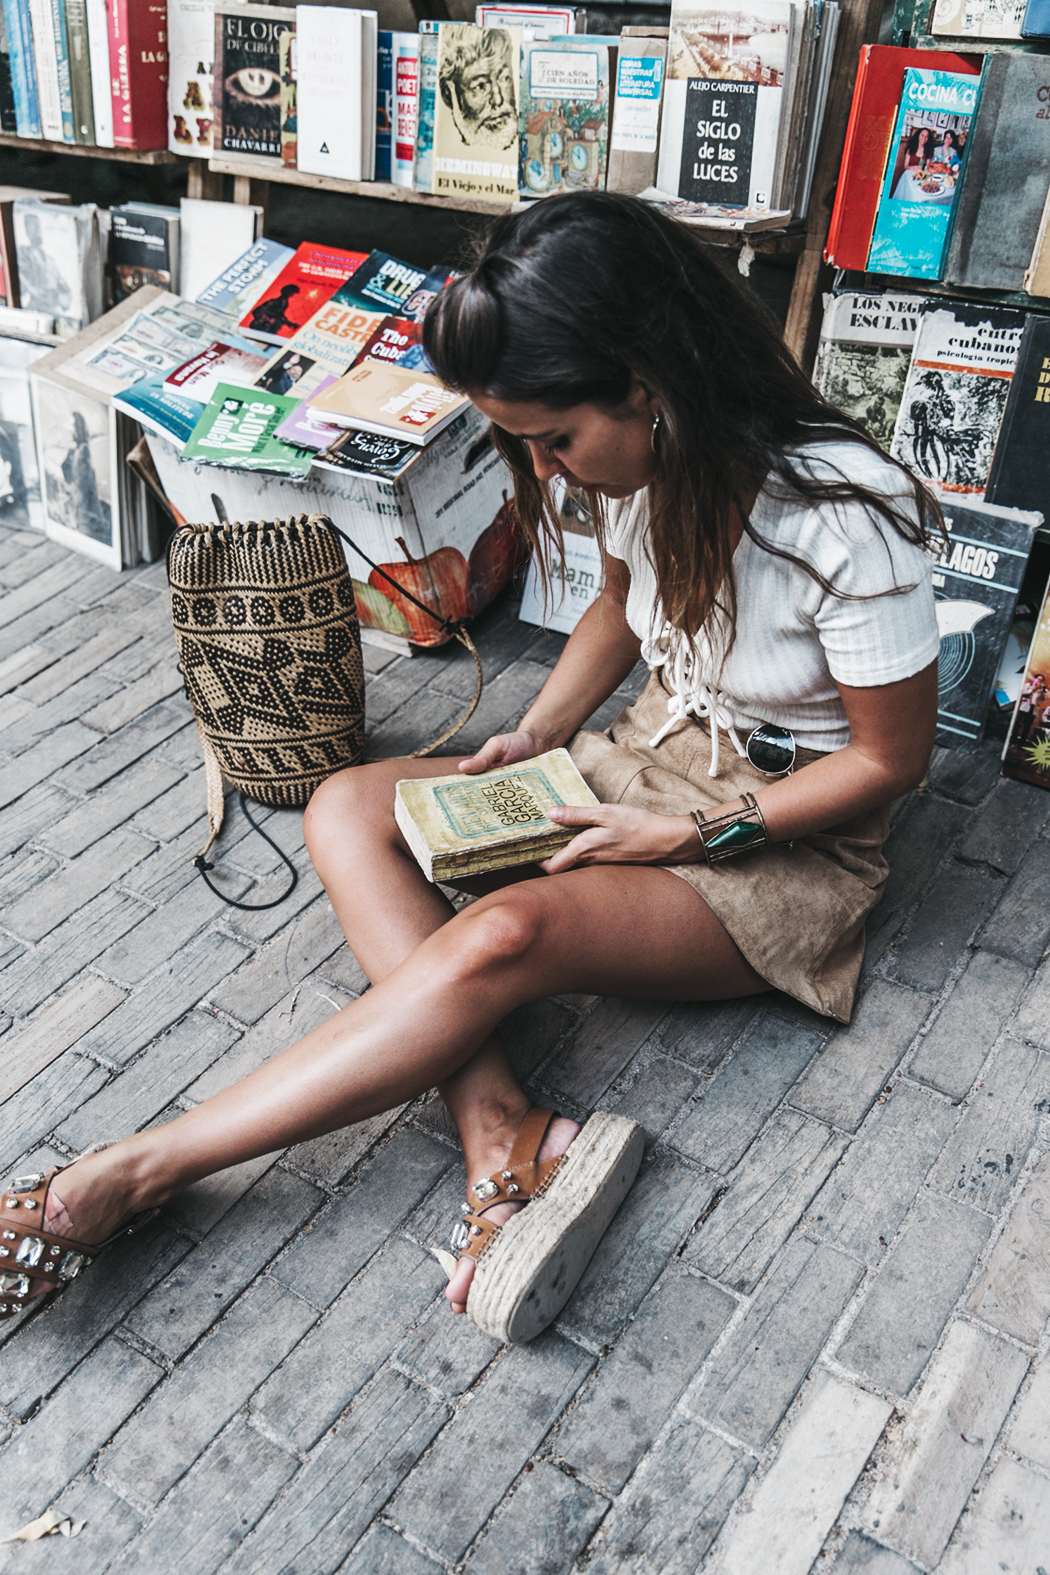 Cuba-Habana_Vieja-Suede_Skirt-Lace_UP_Body-Privacy_Please-Wedges-Outfit-Collage_Vintage-Travels-Street_Style-Backpack-45